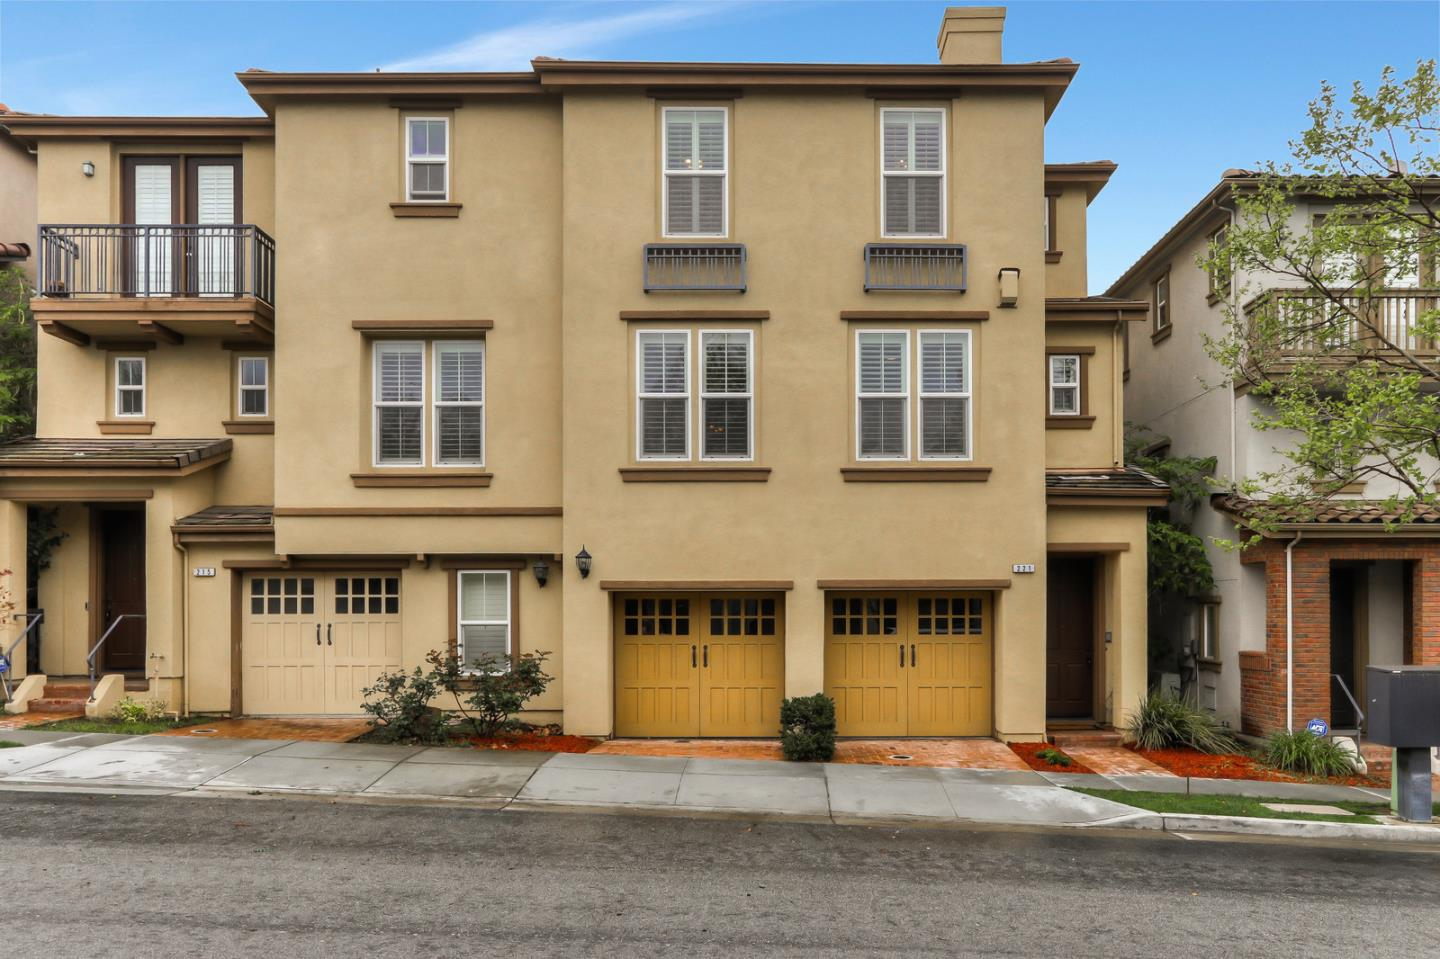 Detail Gallery Image 1 of 24 For 221 Olive Hill Dr, San Jose, CA, 95125 - 3 Beds | 2/1 Baths